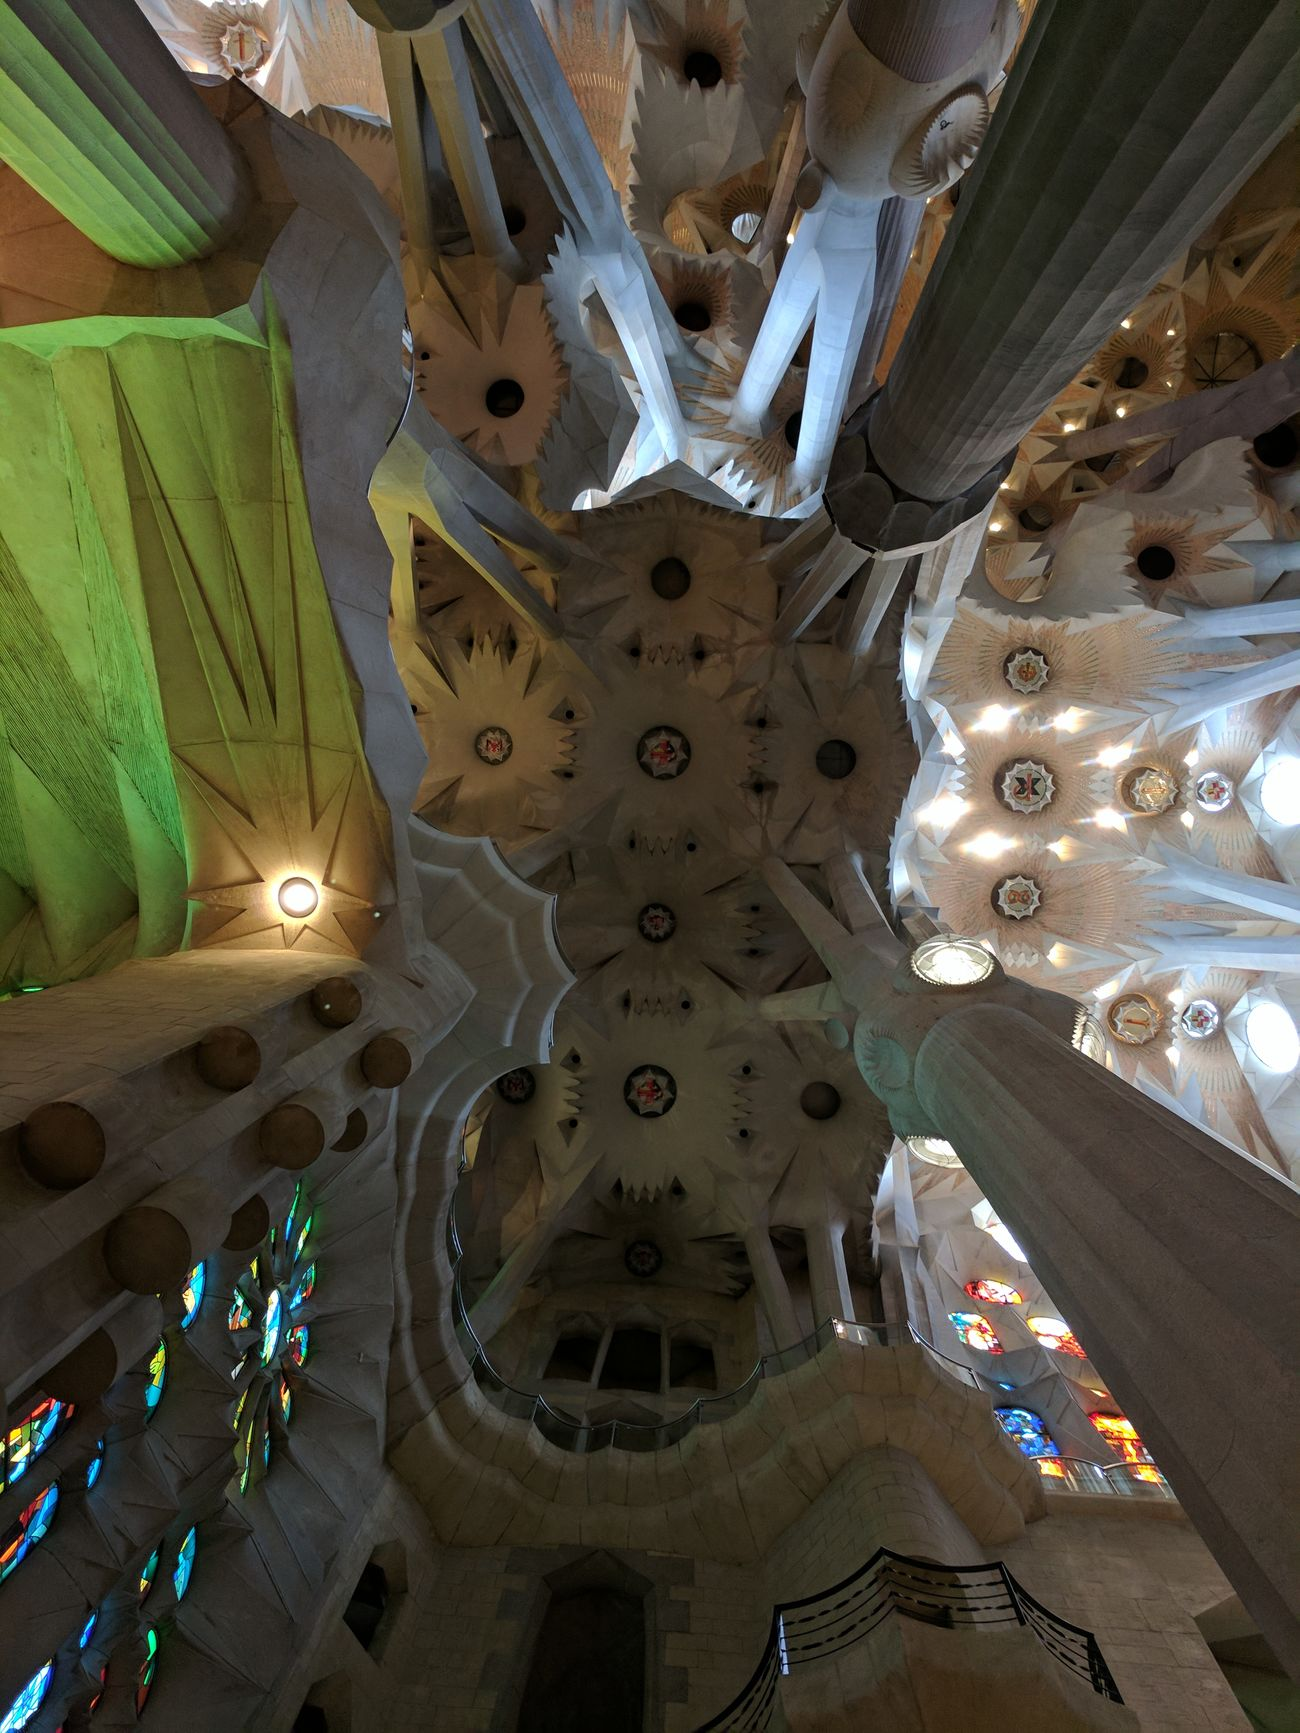 Masterpiece! Architectural Design Architecture Building Ceiling Day Gaudi Indoors  Interior Design Light And Shadow Masterpiece Place Of Worship Pole Spirituality